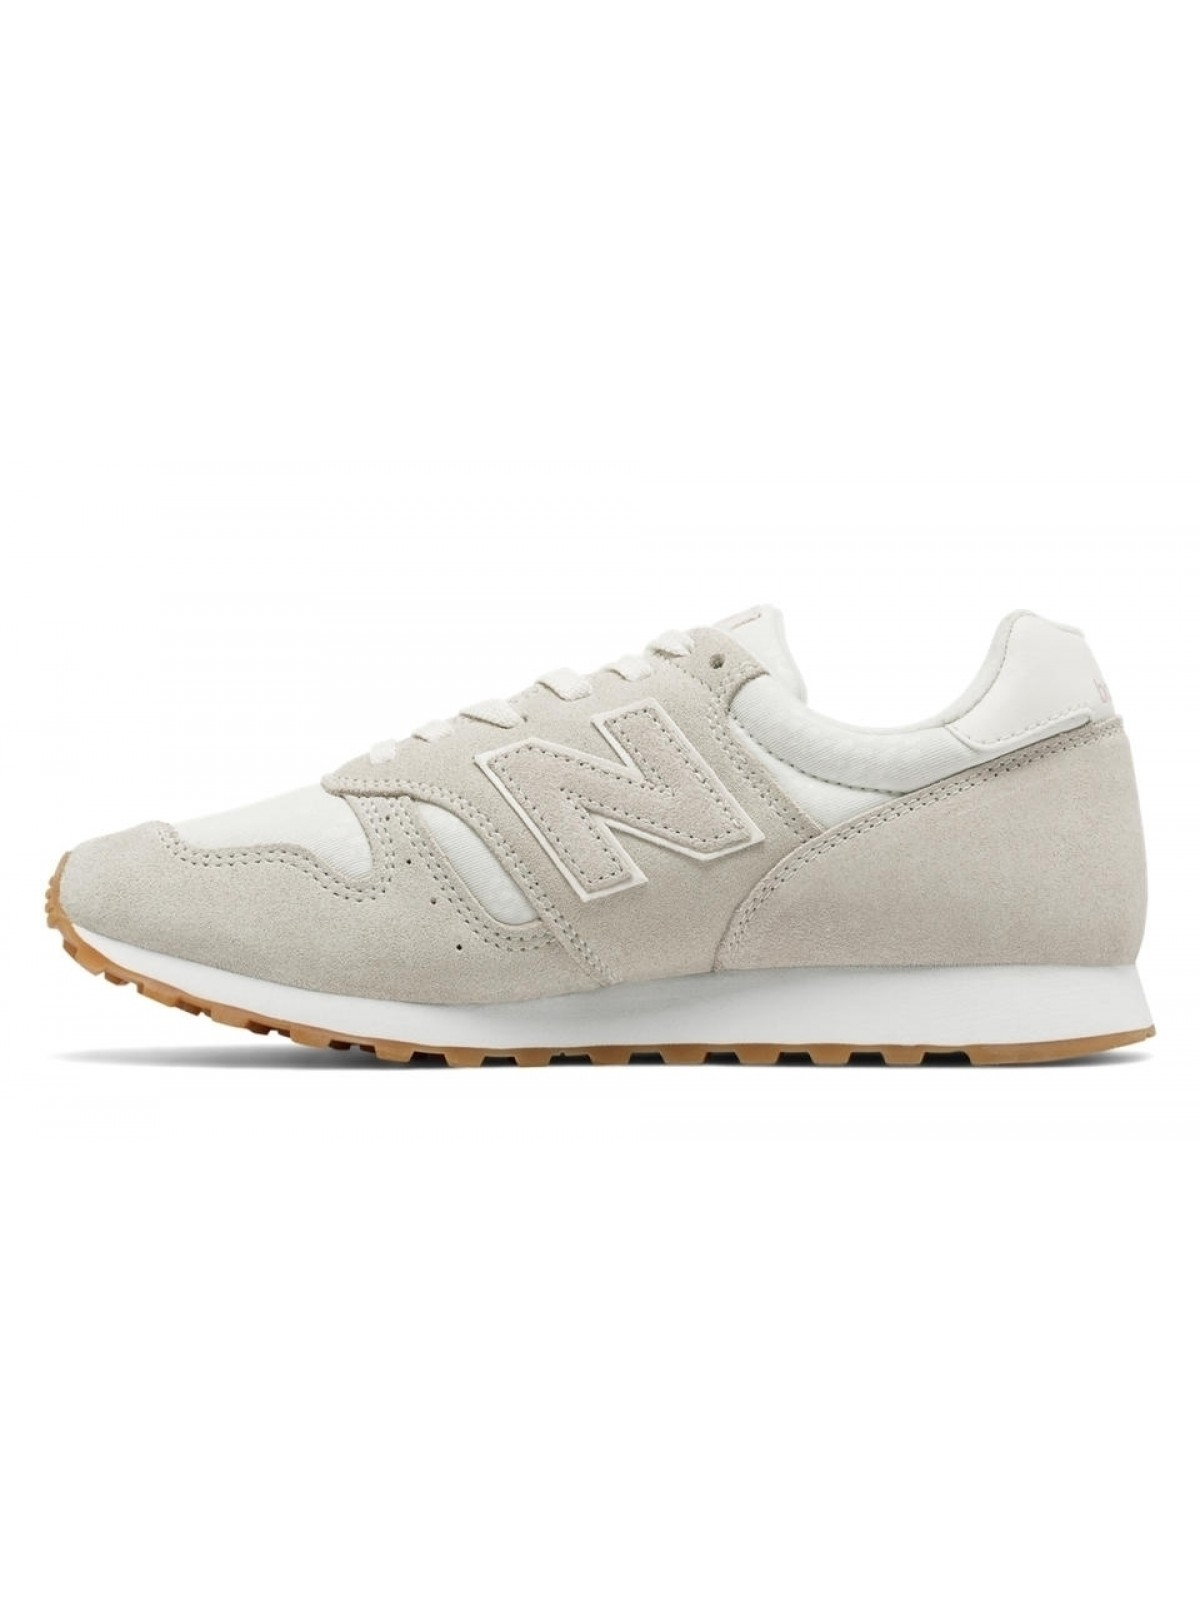 new balance wl373 cream